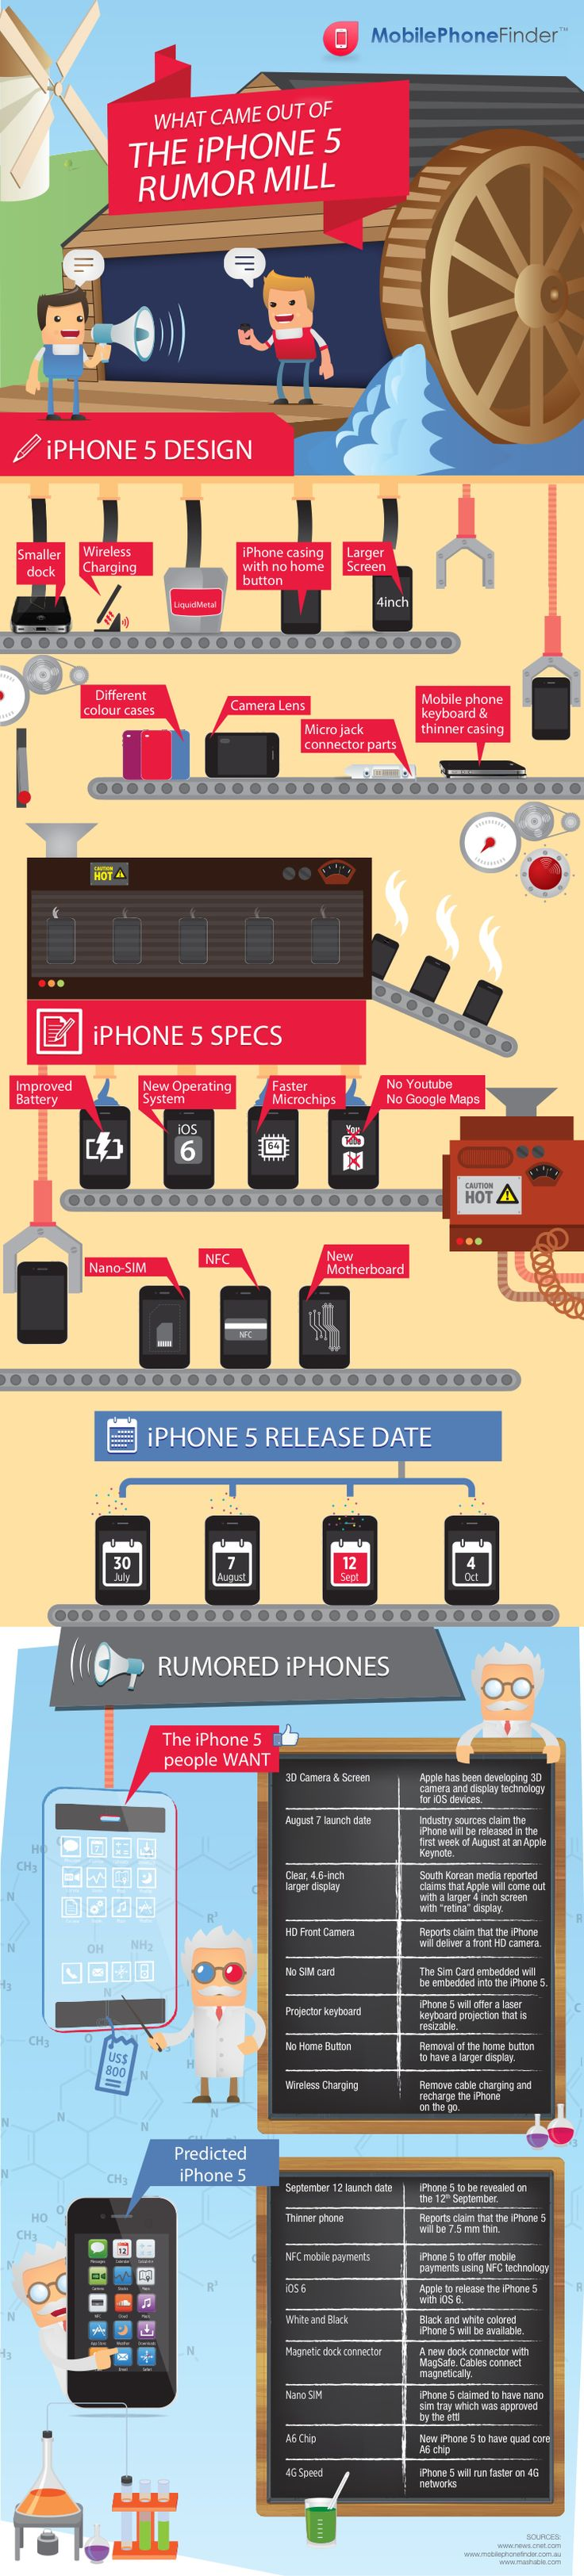 What came out of the iPhone 5 rumour mill